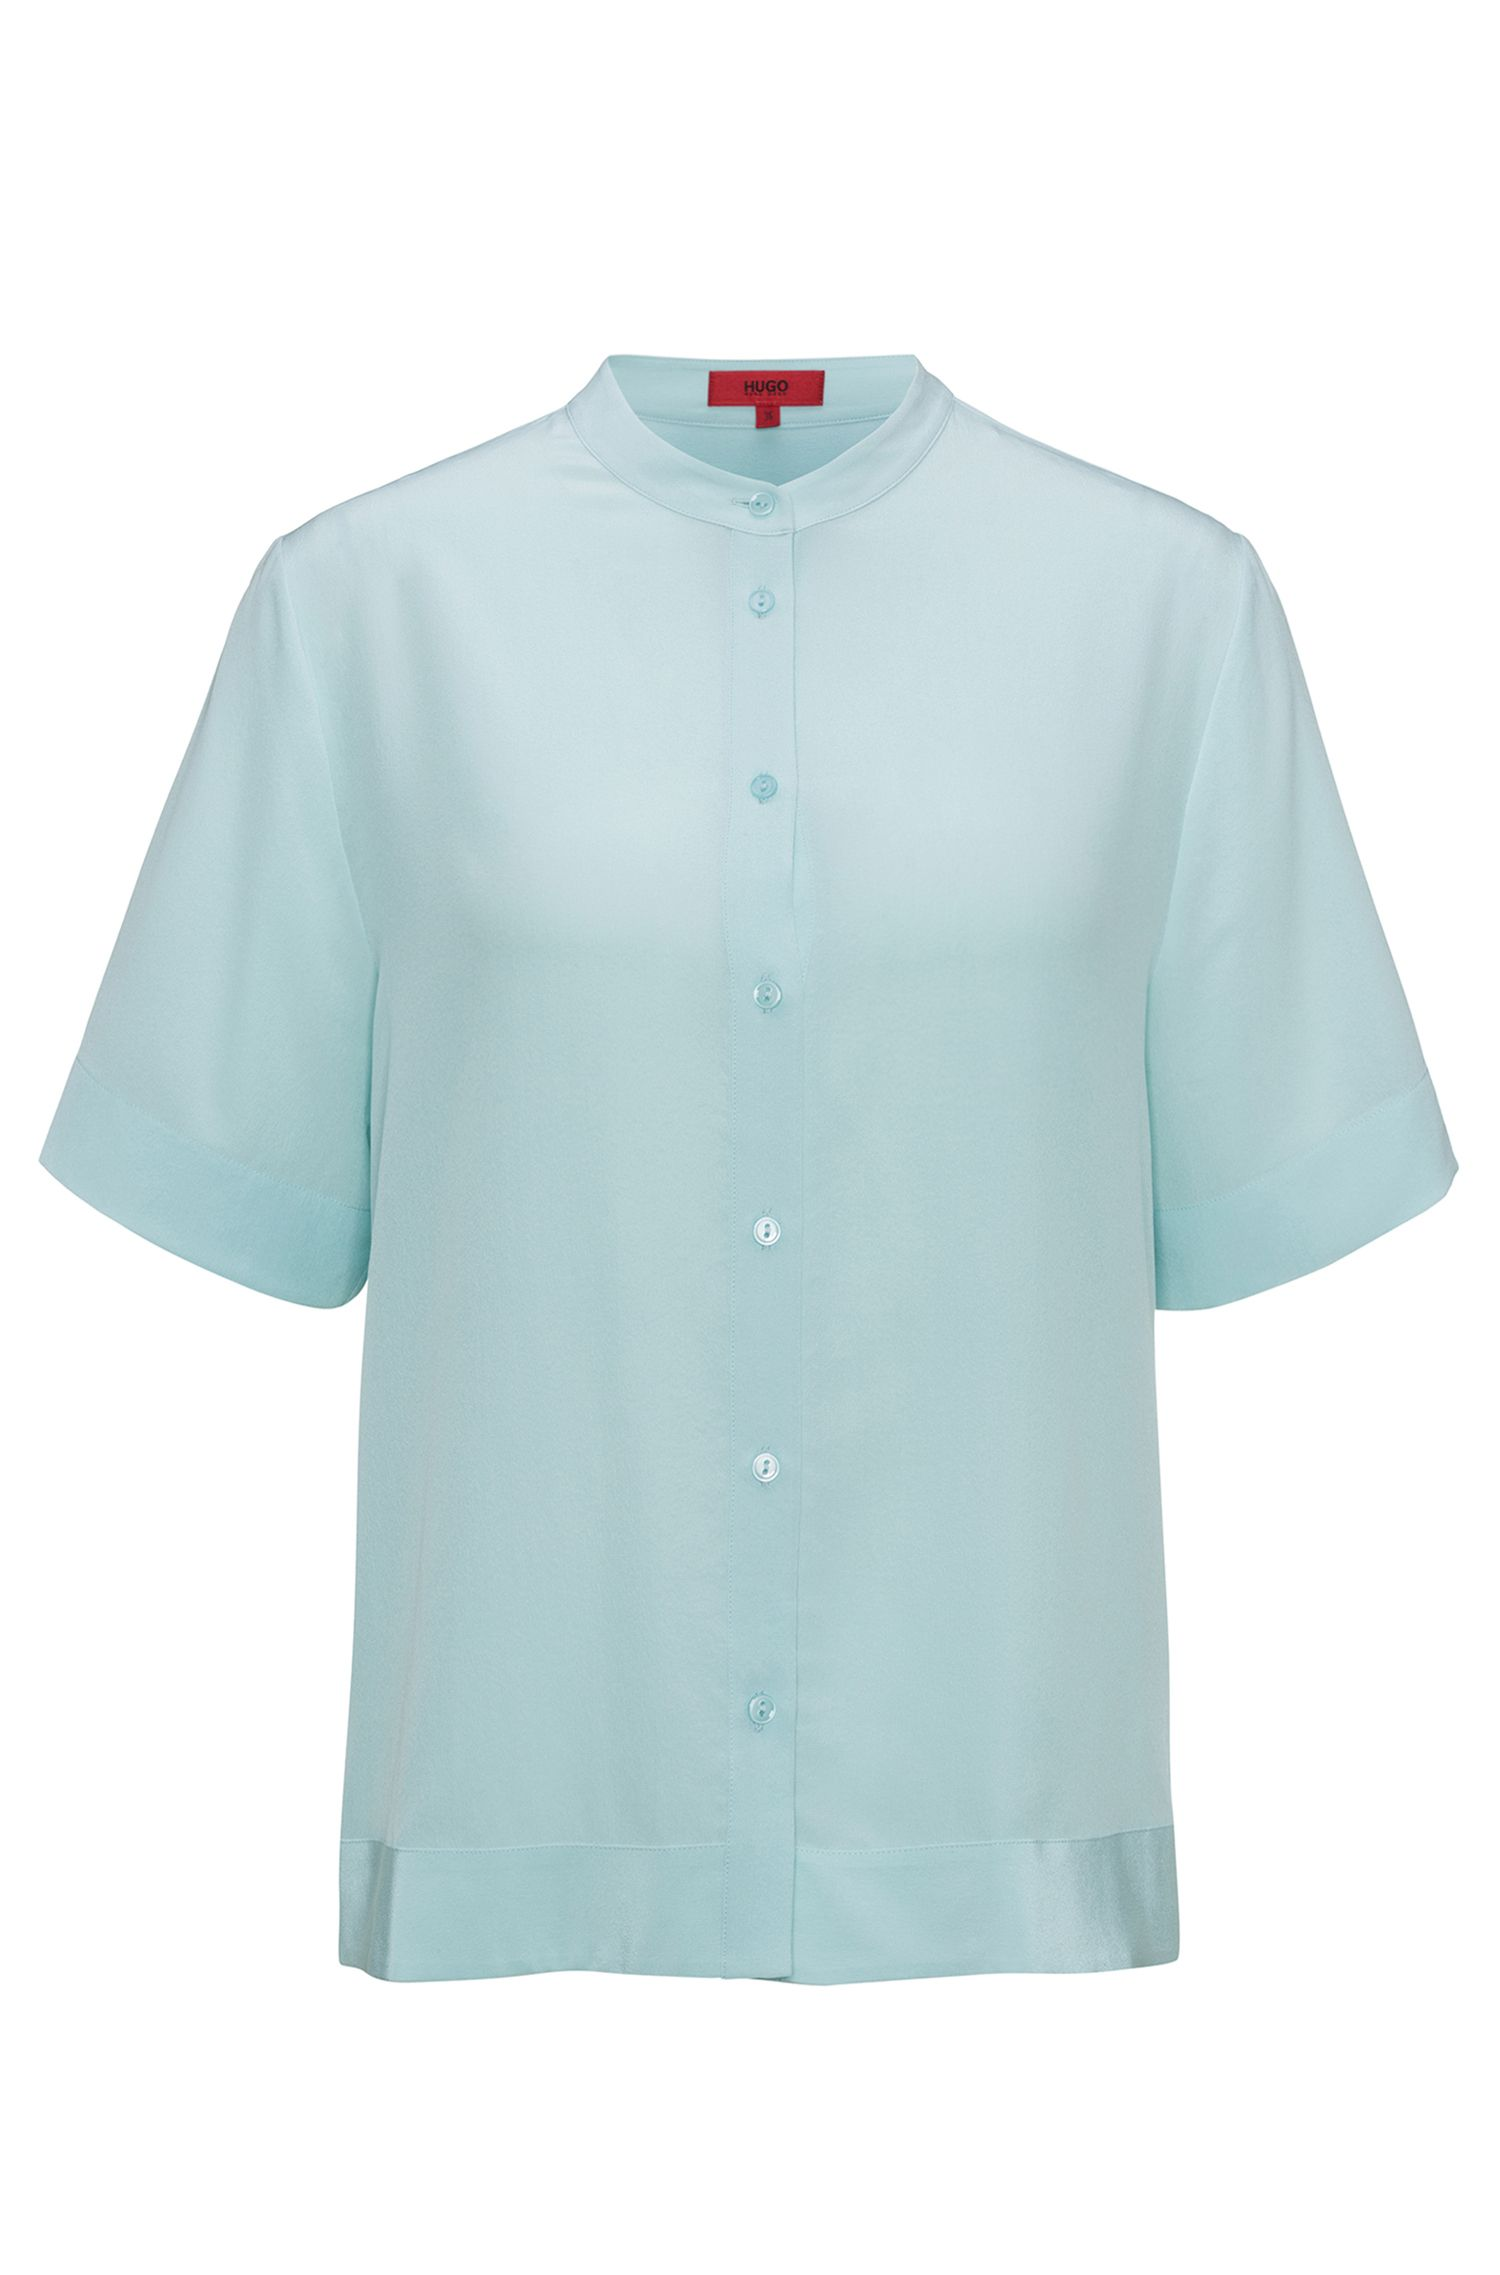 Short-sleeved silk shirt in a relaxed fit